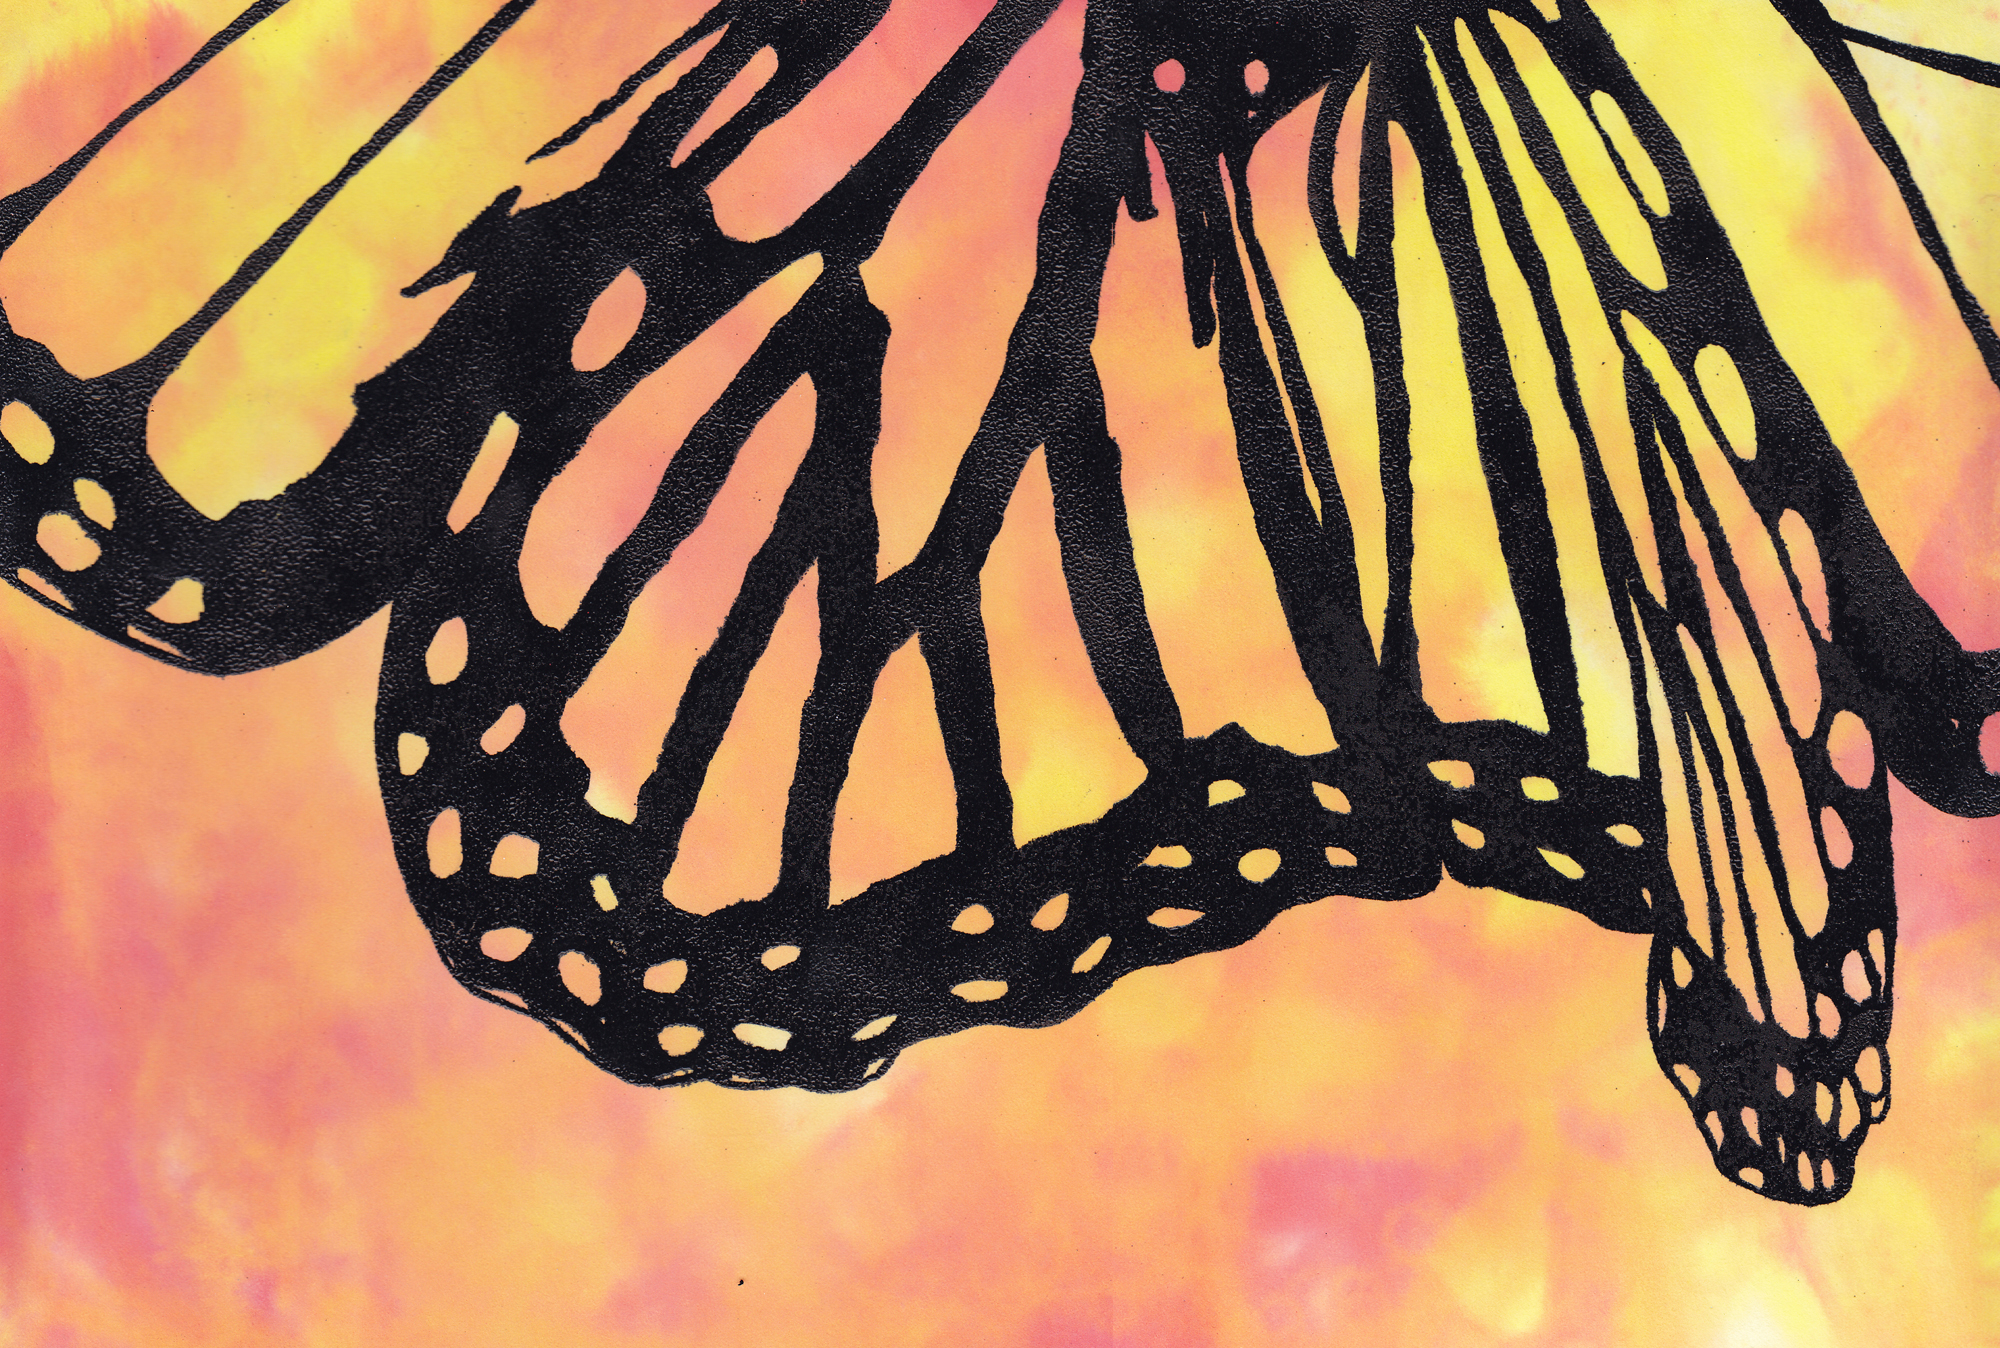 Monarch Butterfly. Polymide Resin on Watercolor. 13.35x9.25 Brandi Malarkey, artist. ItsAllMalarkey.com